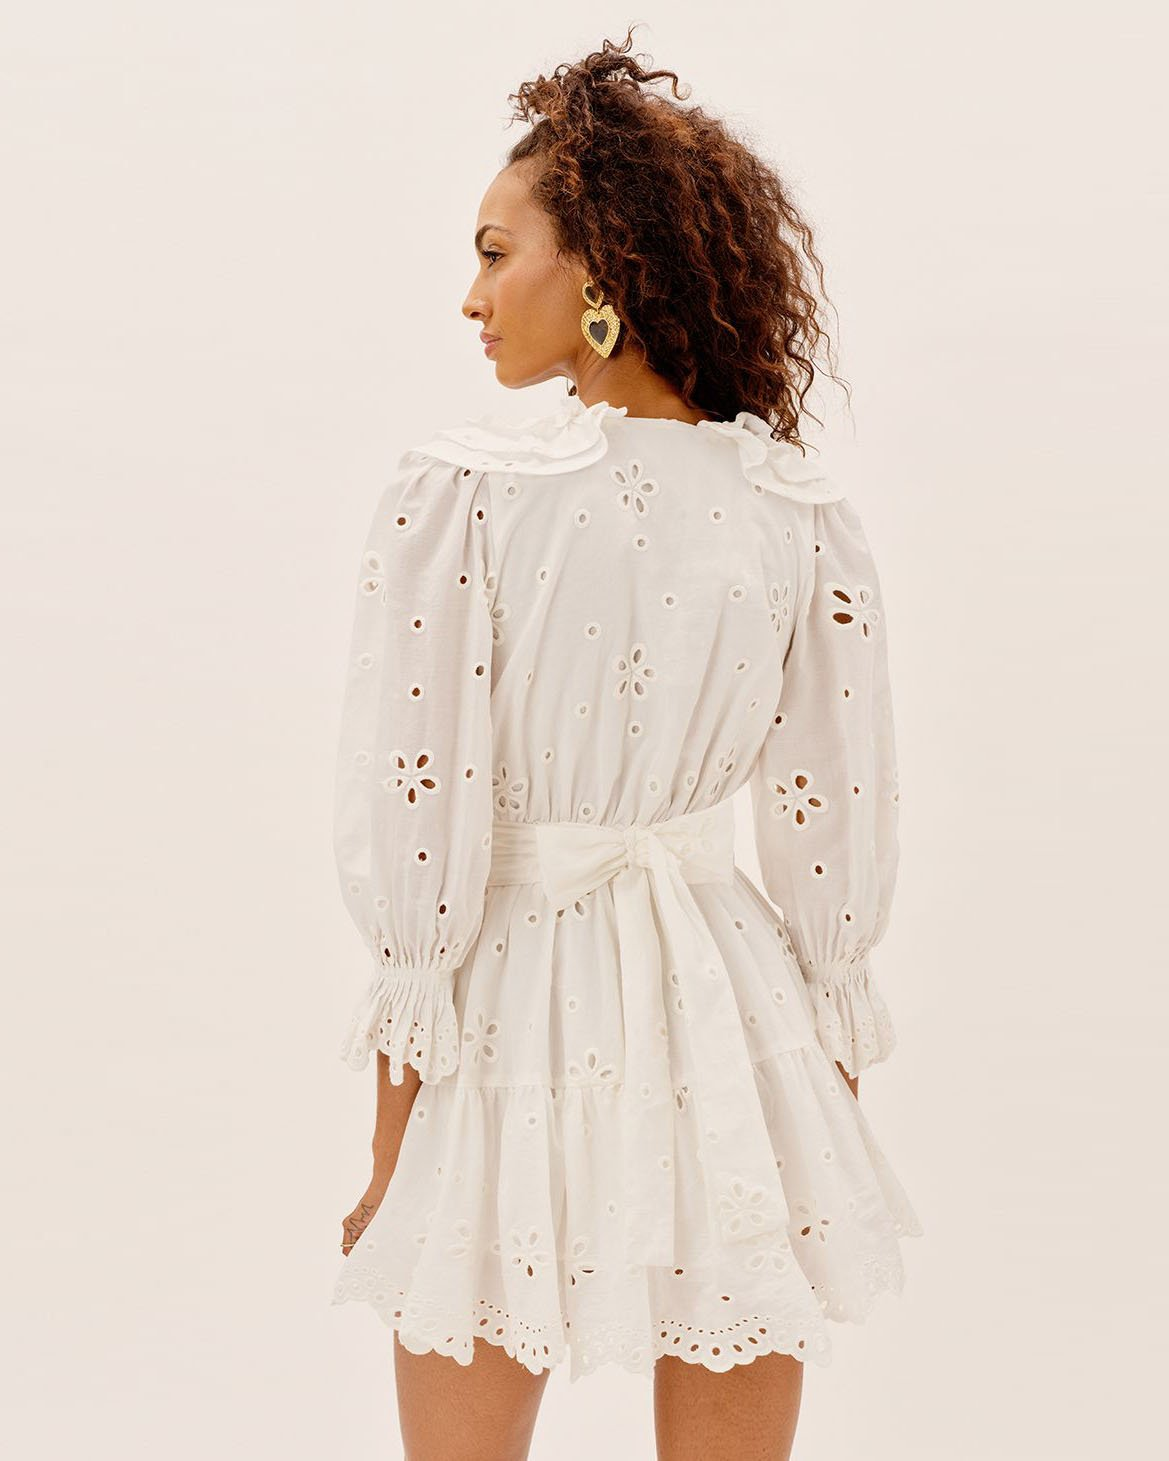 Load image into Gallery viewer, Serena Mini Dress - White | For Love and Lemons - Women's Clothing